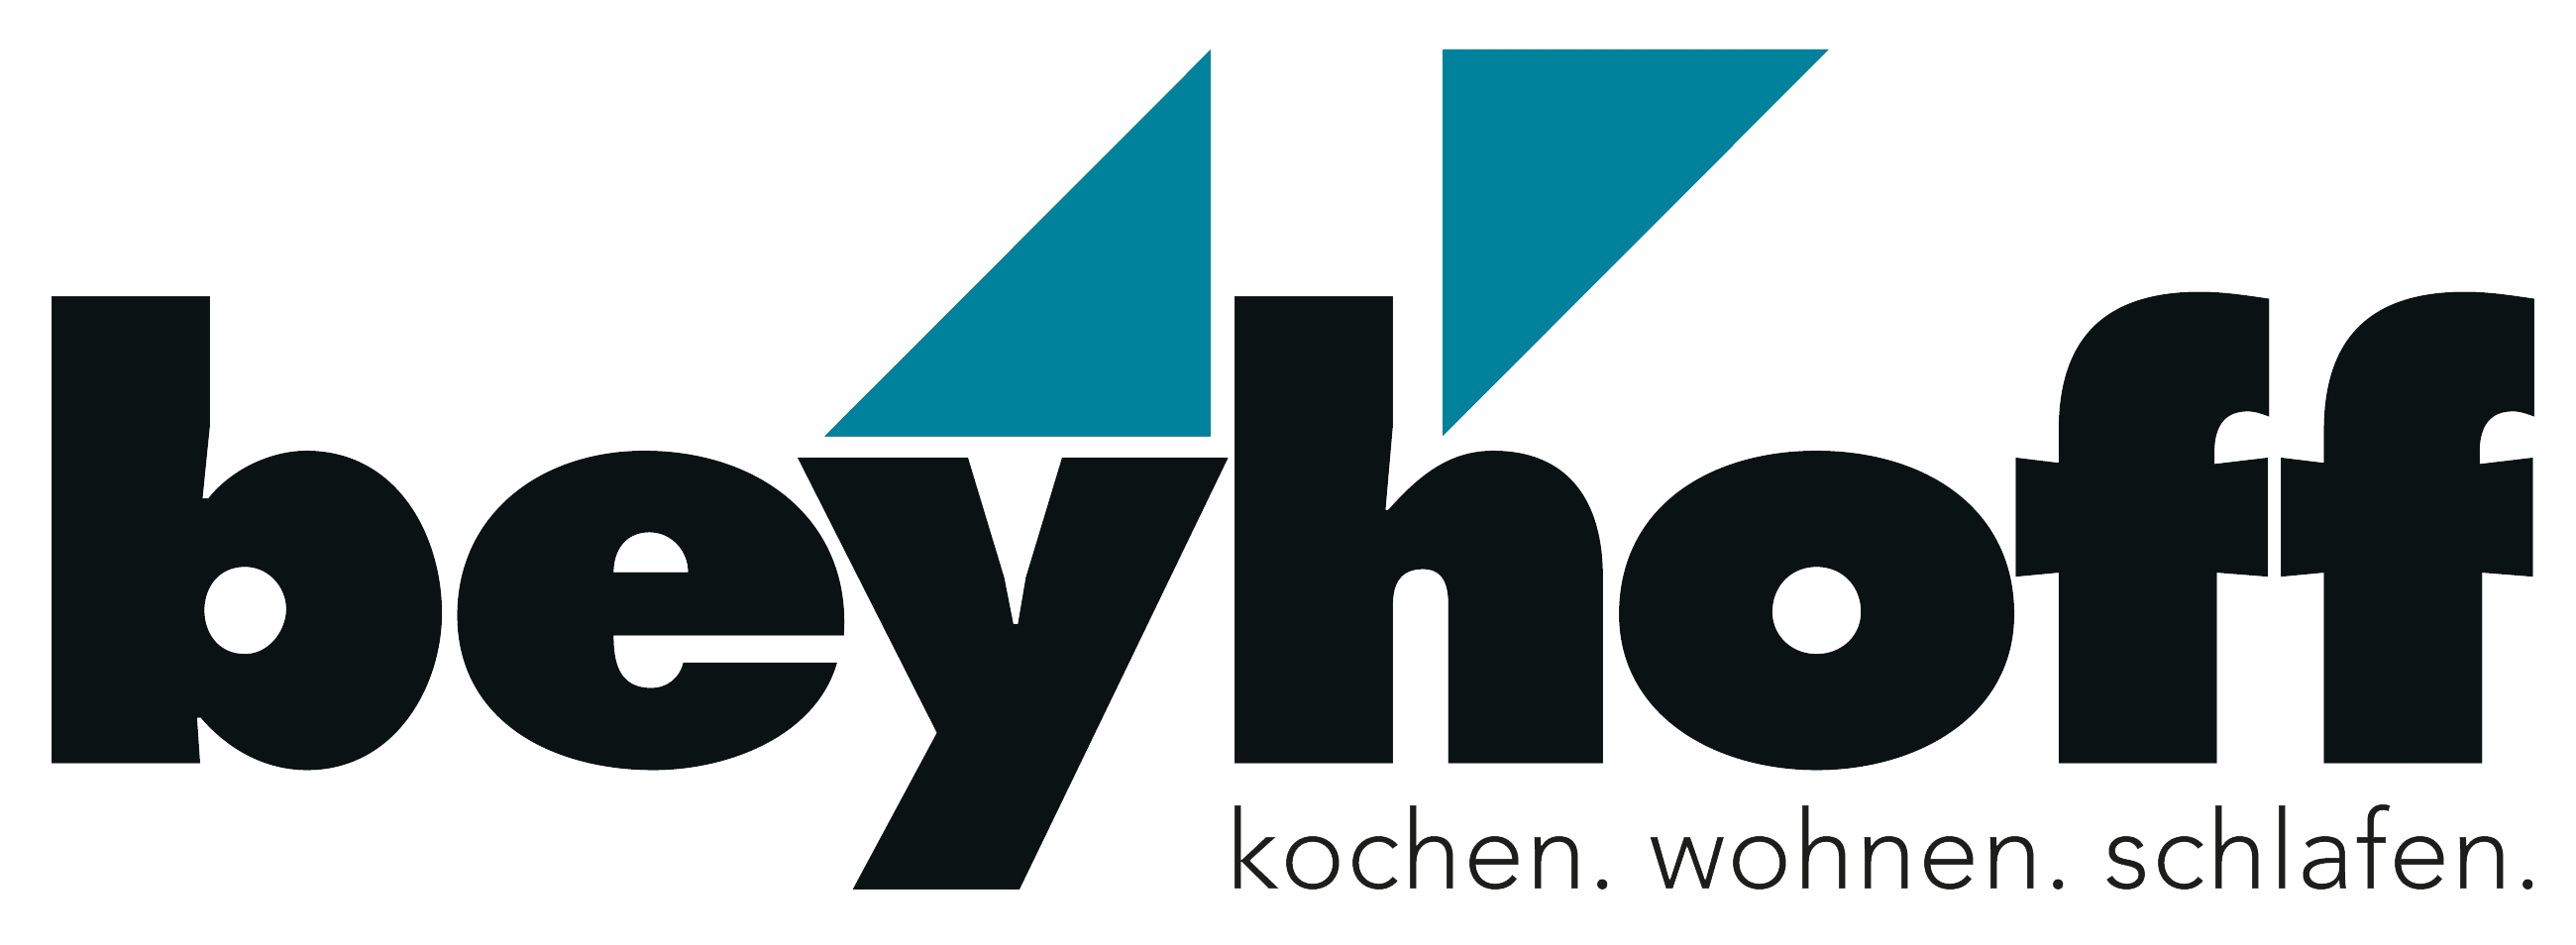 moebel-beyhoff-gmbh--co-kg-bottrop logo